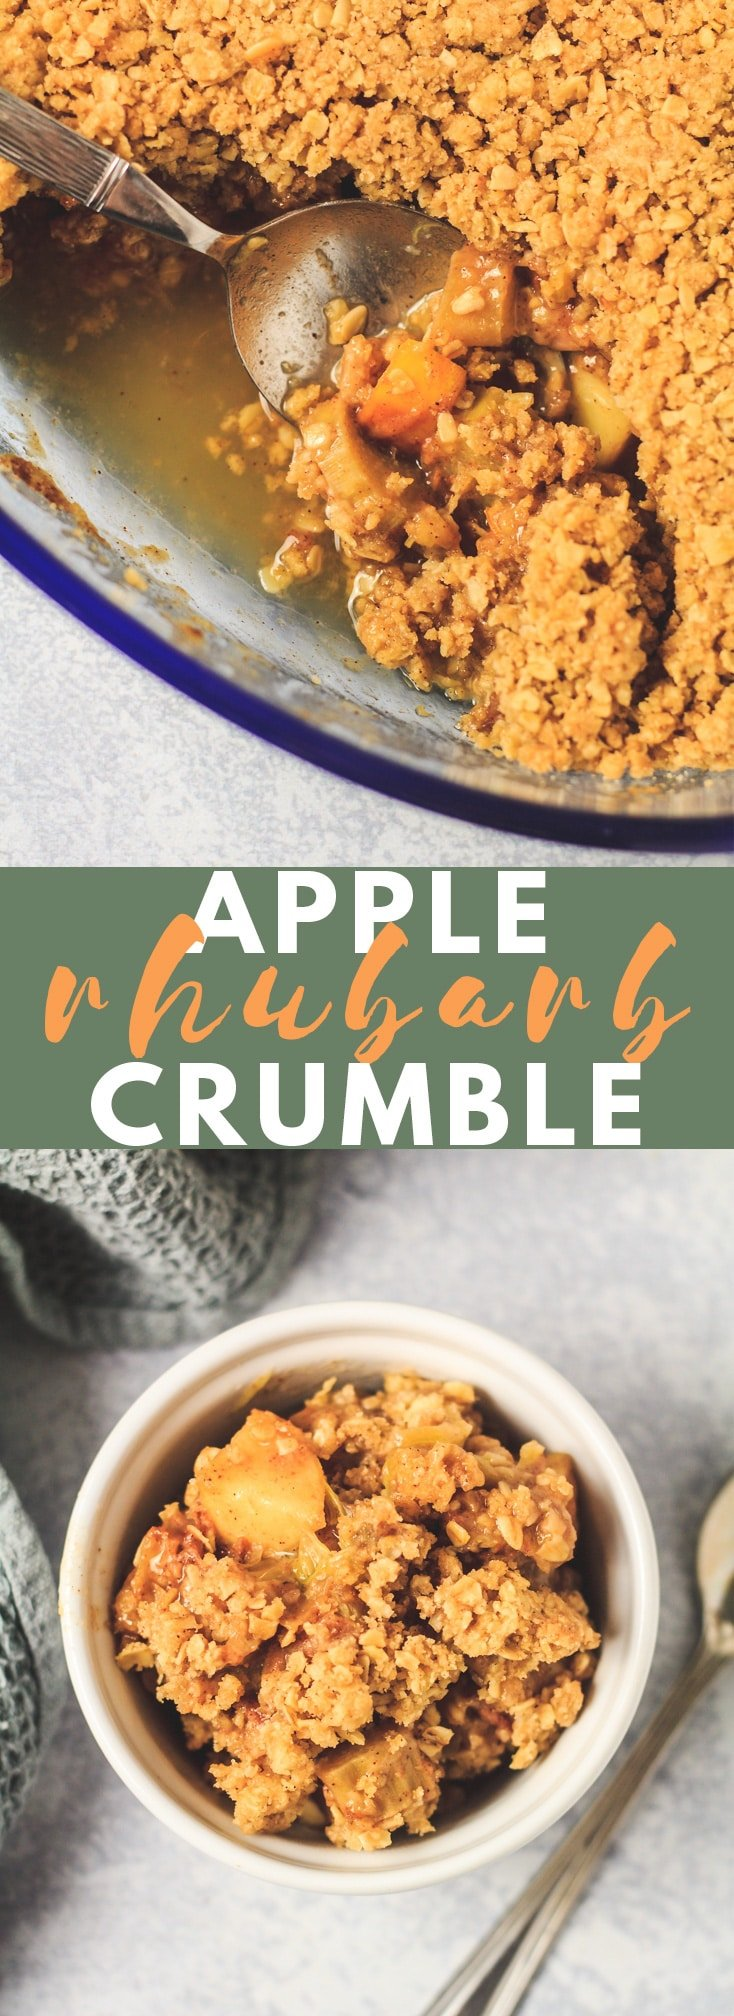 Apple and Rhubarb Crumble - A deliciously sweet and perfectly spiced apple and rhubarb filling that is topped with a generous amount of buttery crumble. This Apple and Rhubarb Crumble makes a perfect winter dessert served warm with custard or ice cream! #applecrumble #rhubarbcrumble #crumble #fallrecipes #winterrecipes